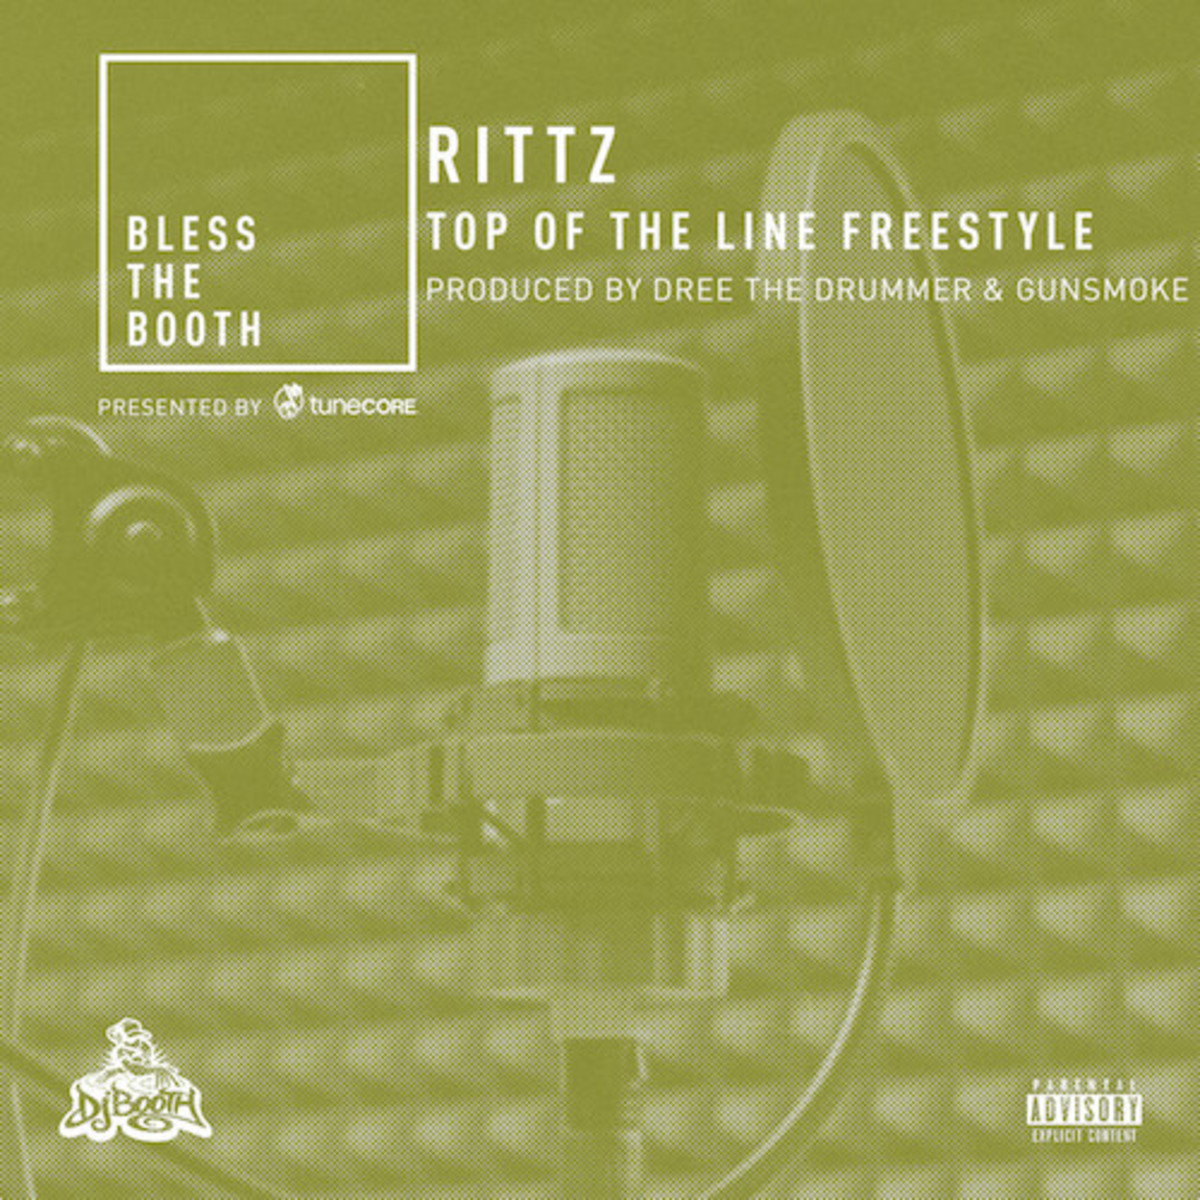 rittz-top-of-the-line-freestyle.jpg